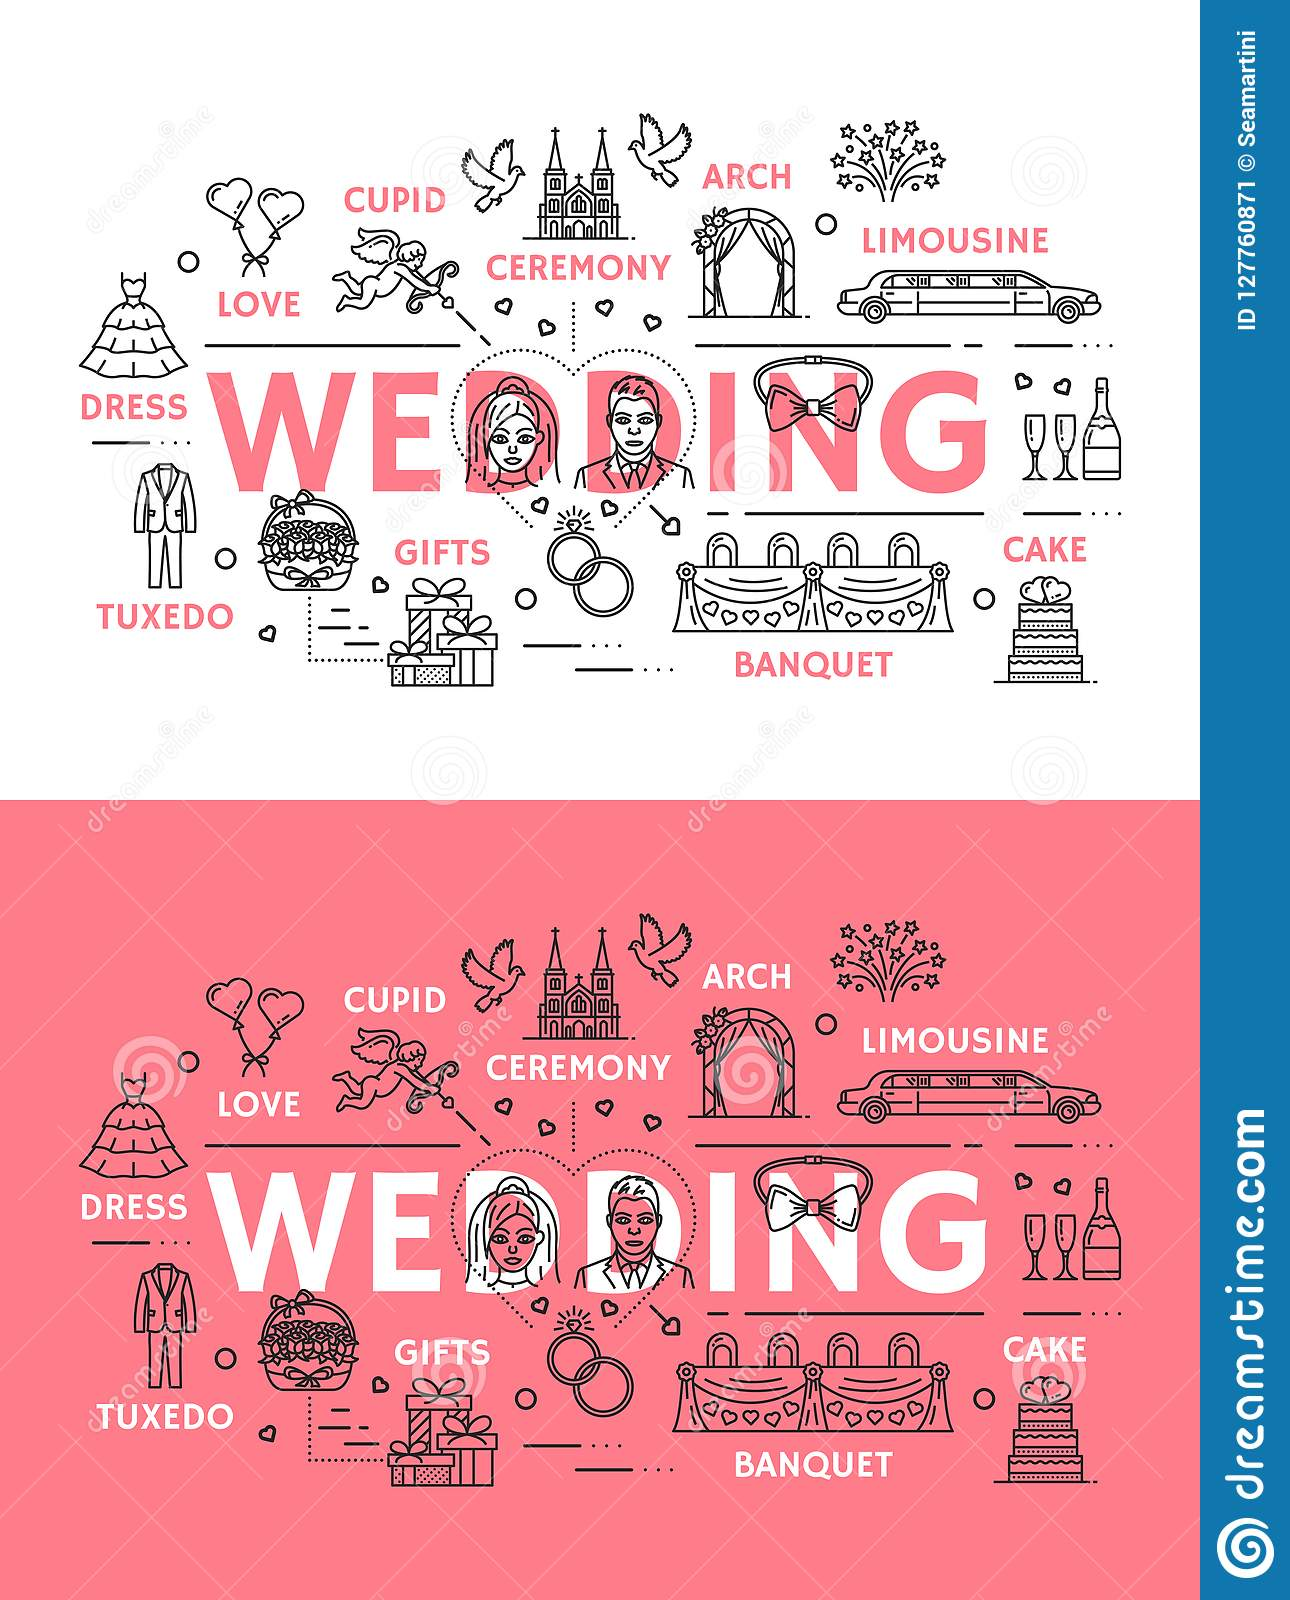 Wedding Ceremony Line Art Poster Of Outline Icons Stock